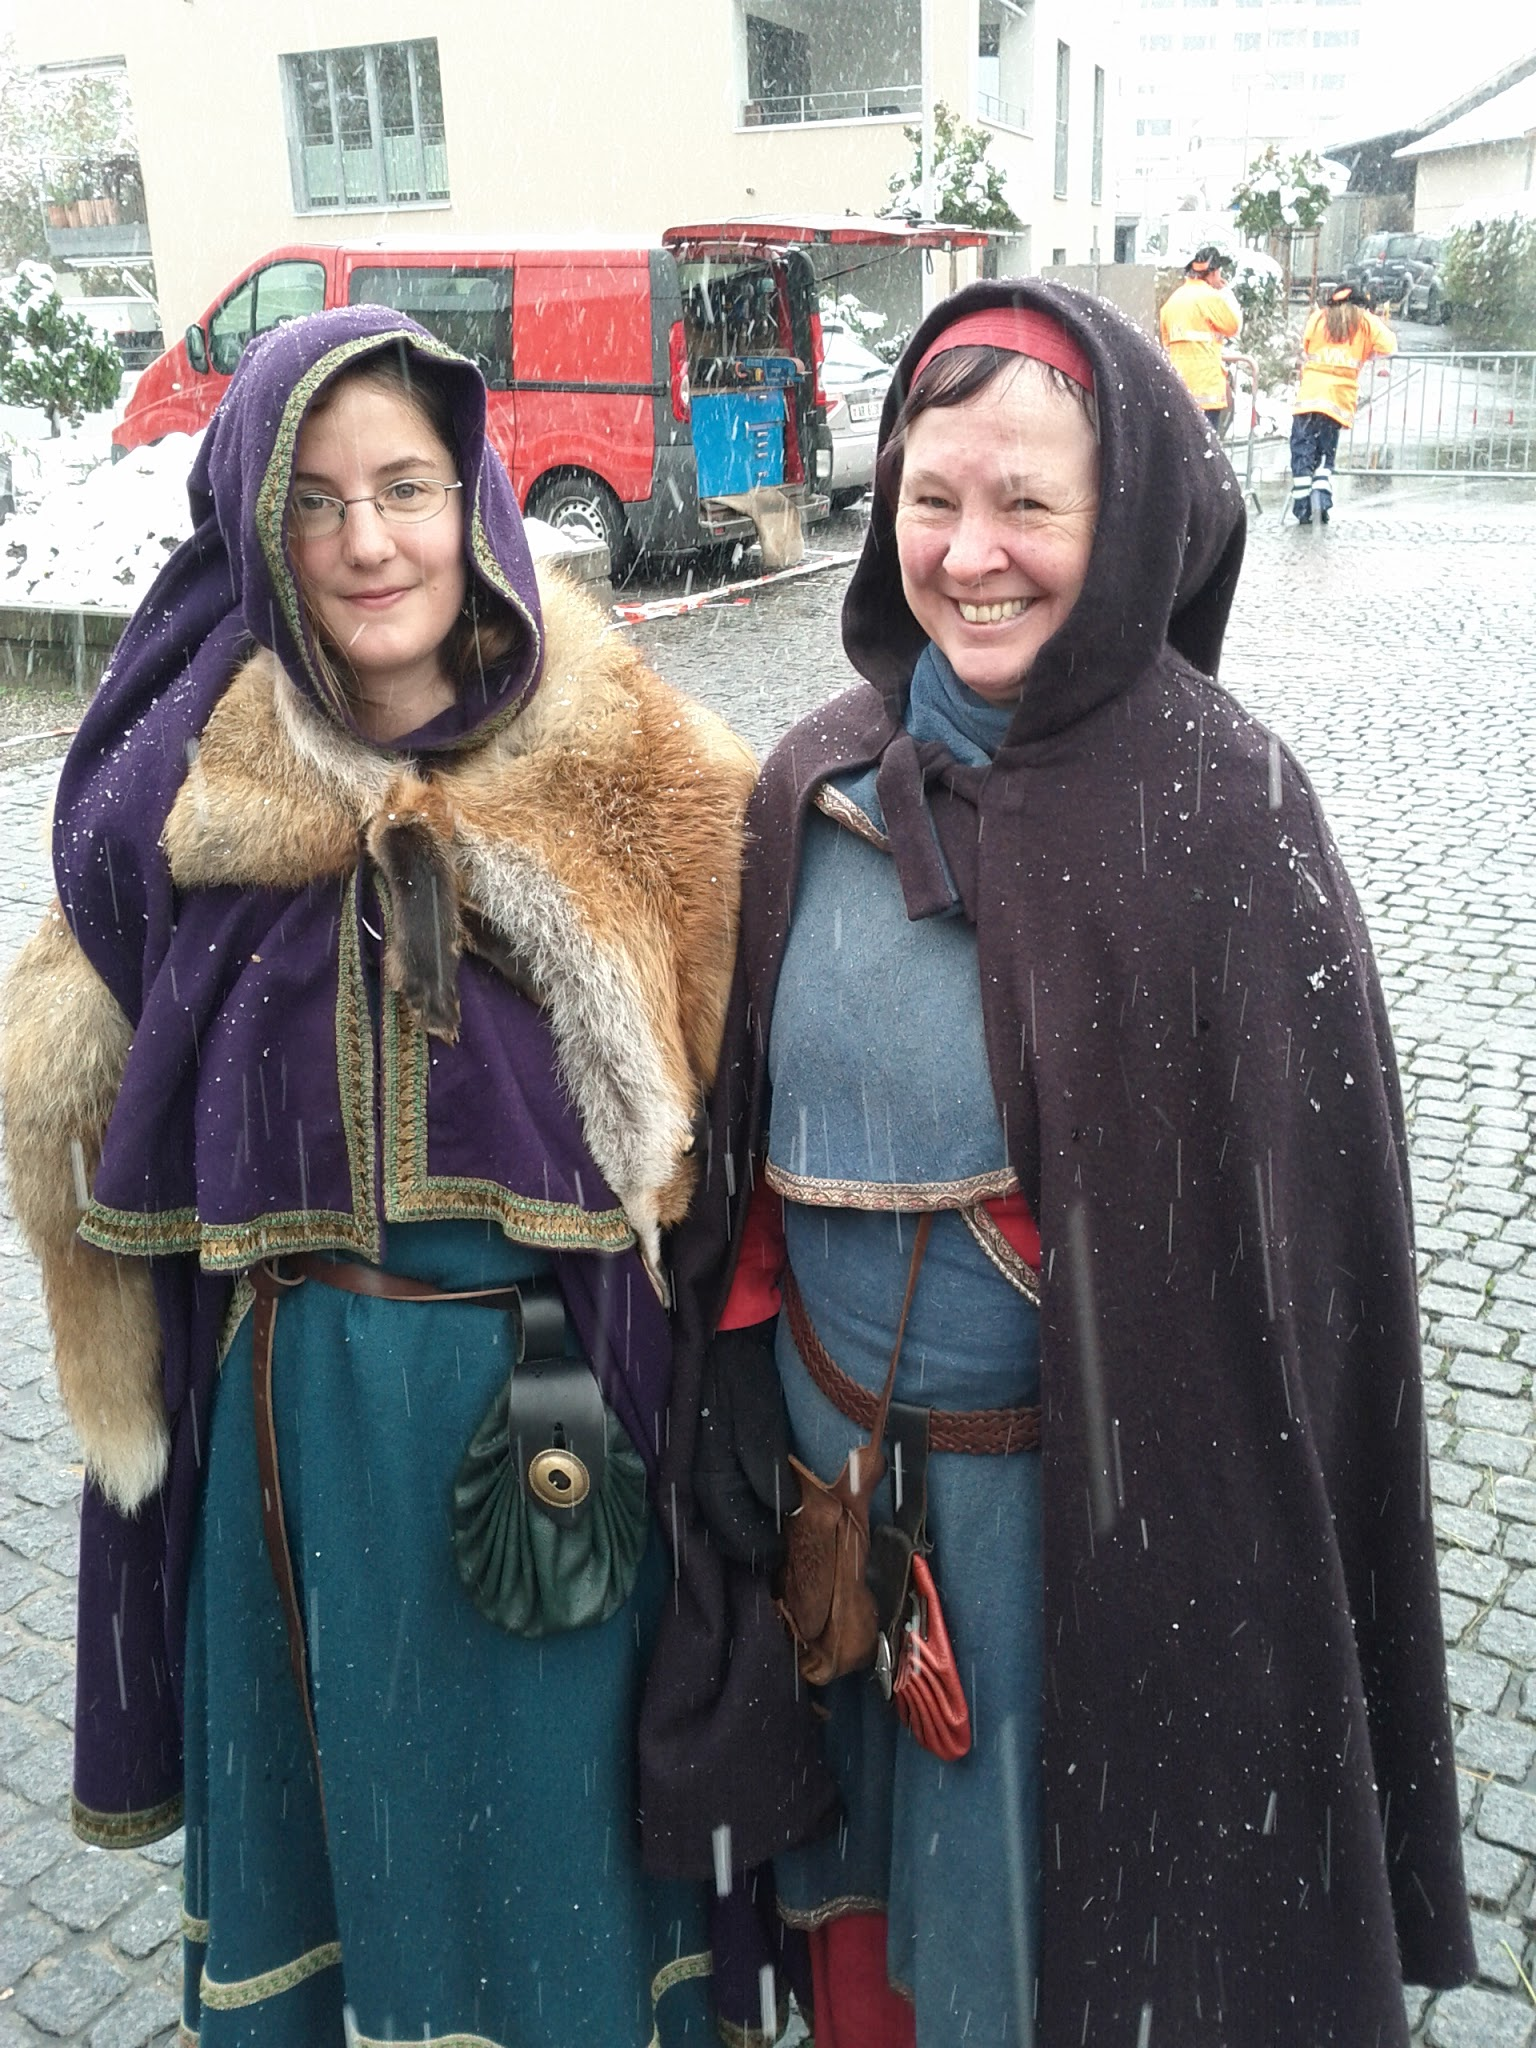 Middle Ages: even the ladies carried knives!